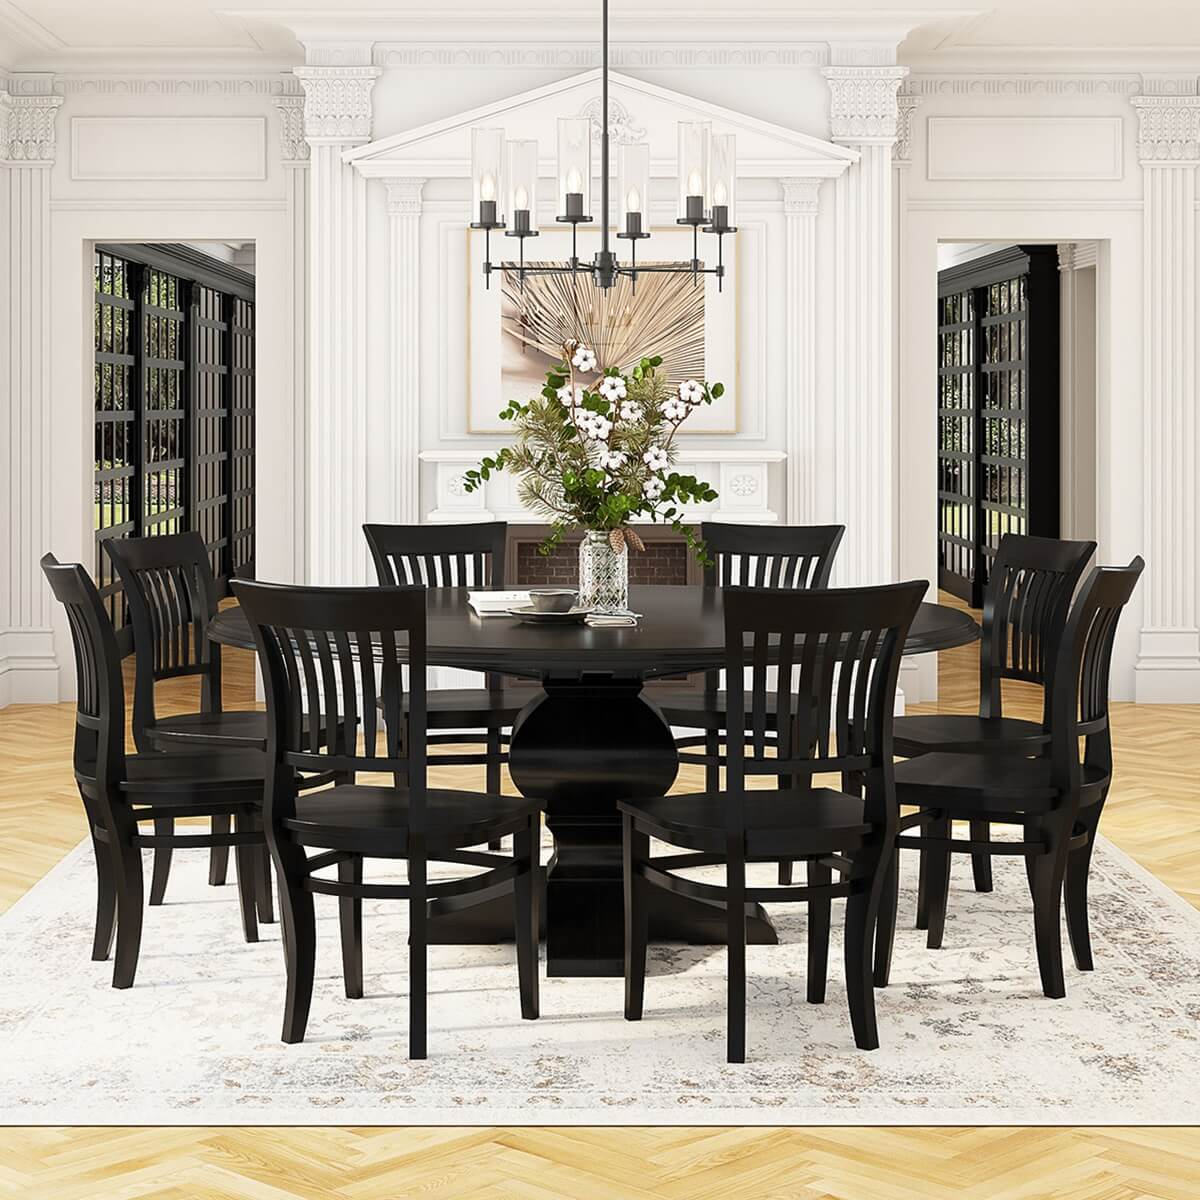 Sierra nevada large round rustic solid wood dining table for Wooden dining table chairs